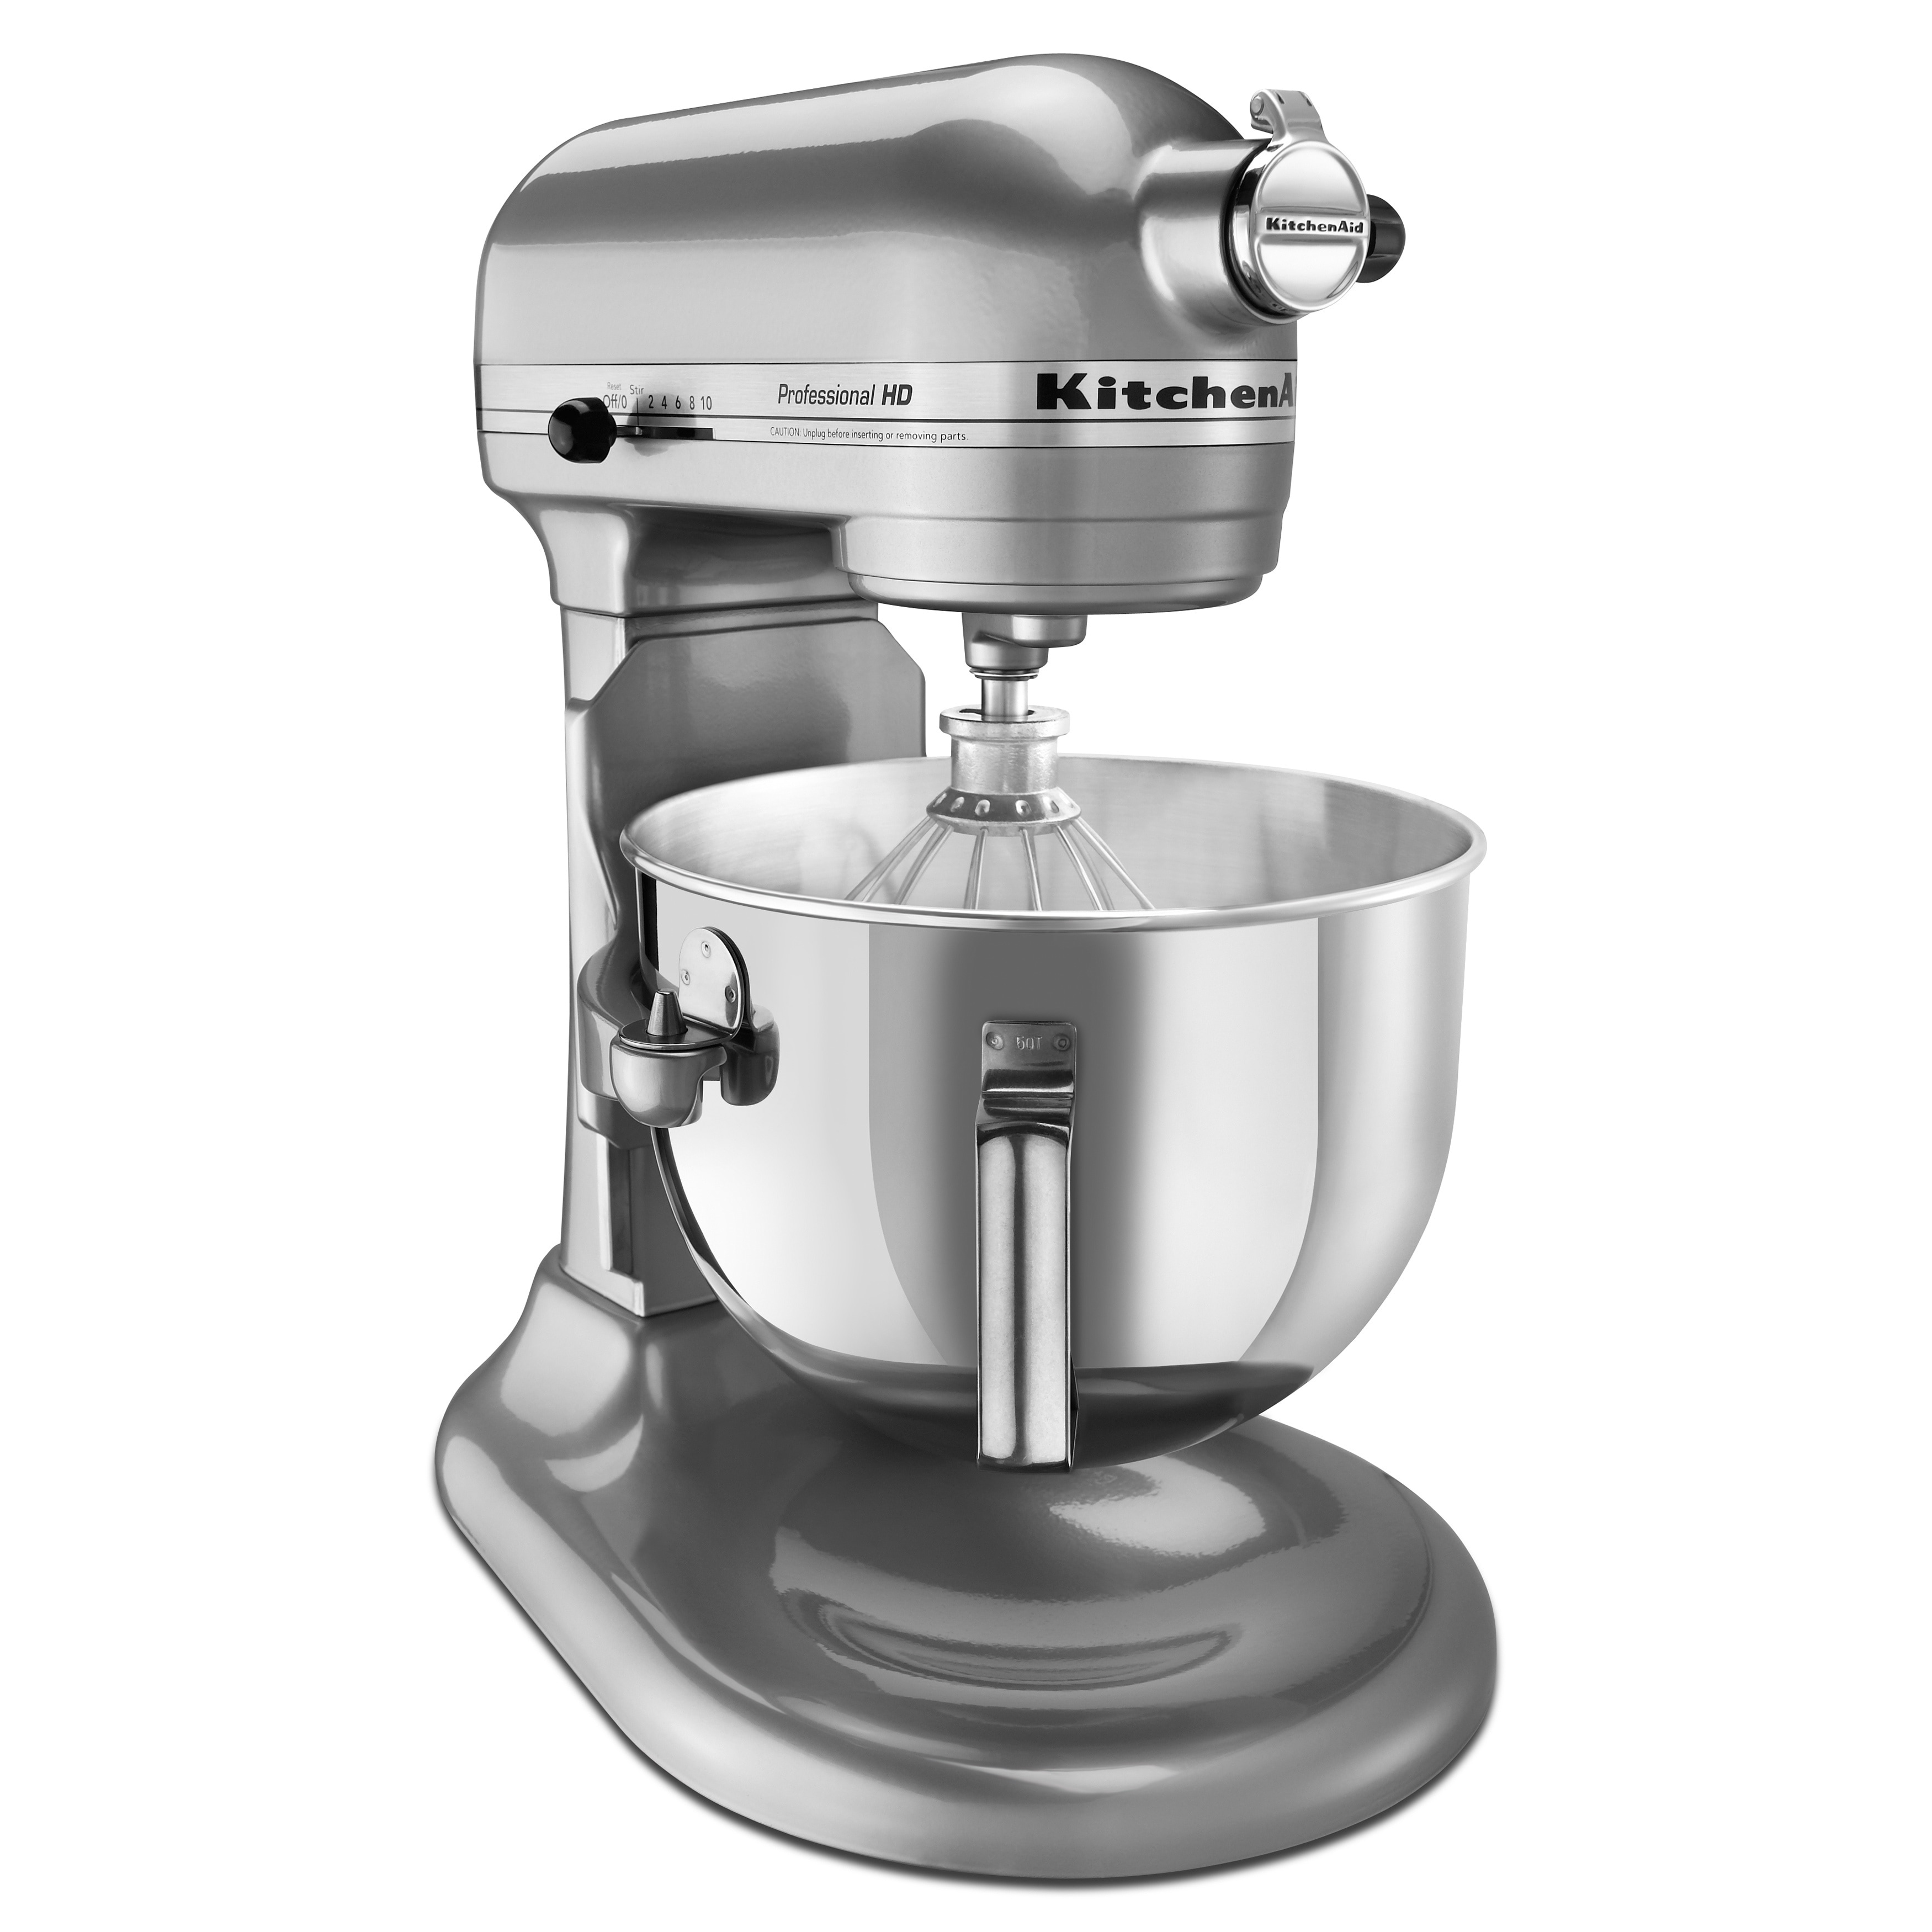 Shop KitchenAid RKG25H0XMC Metallic Chrome 5 Quart Bowl Lift Pro Stand Mixer  (Refurbished)   Free Shipping Today   Overstock.com   13930858